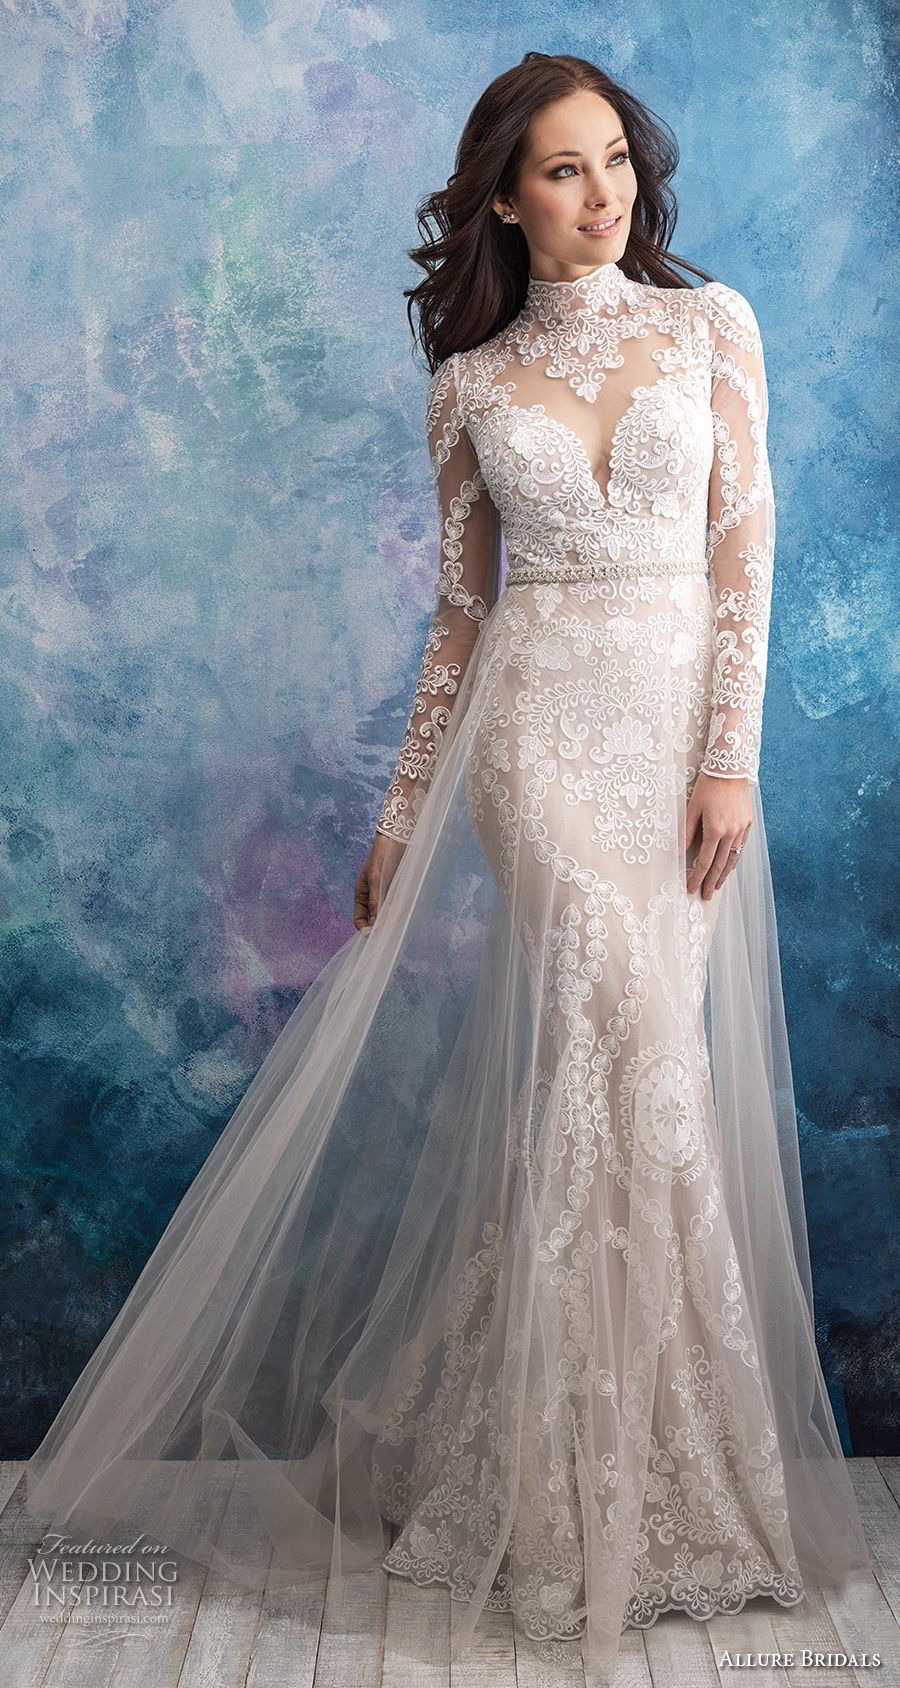 allure bridals fall 2018 bridal long sleeves illusion high neck sweetheart neckline full embellishment elegant fit and flare wedding dress a line overskirt lace back sweep train (4) mv